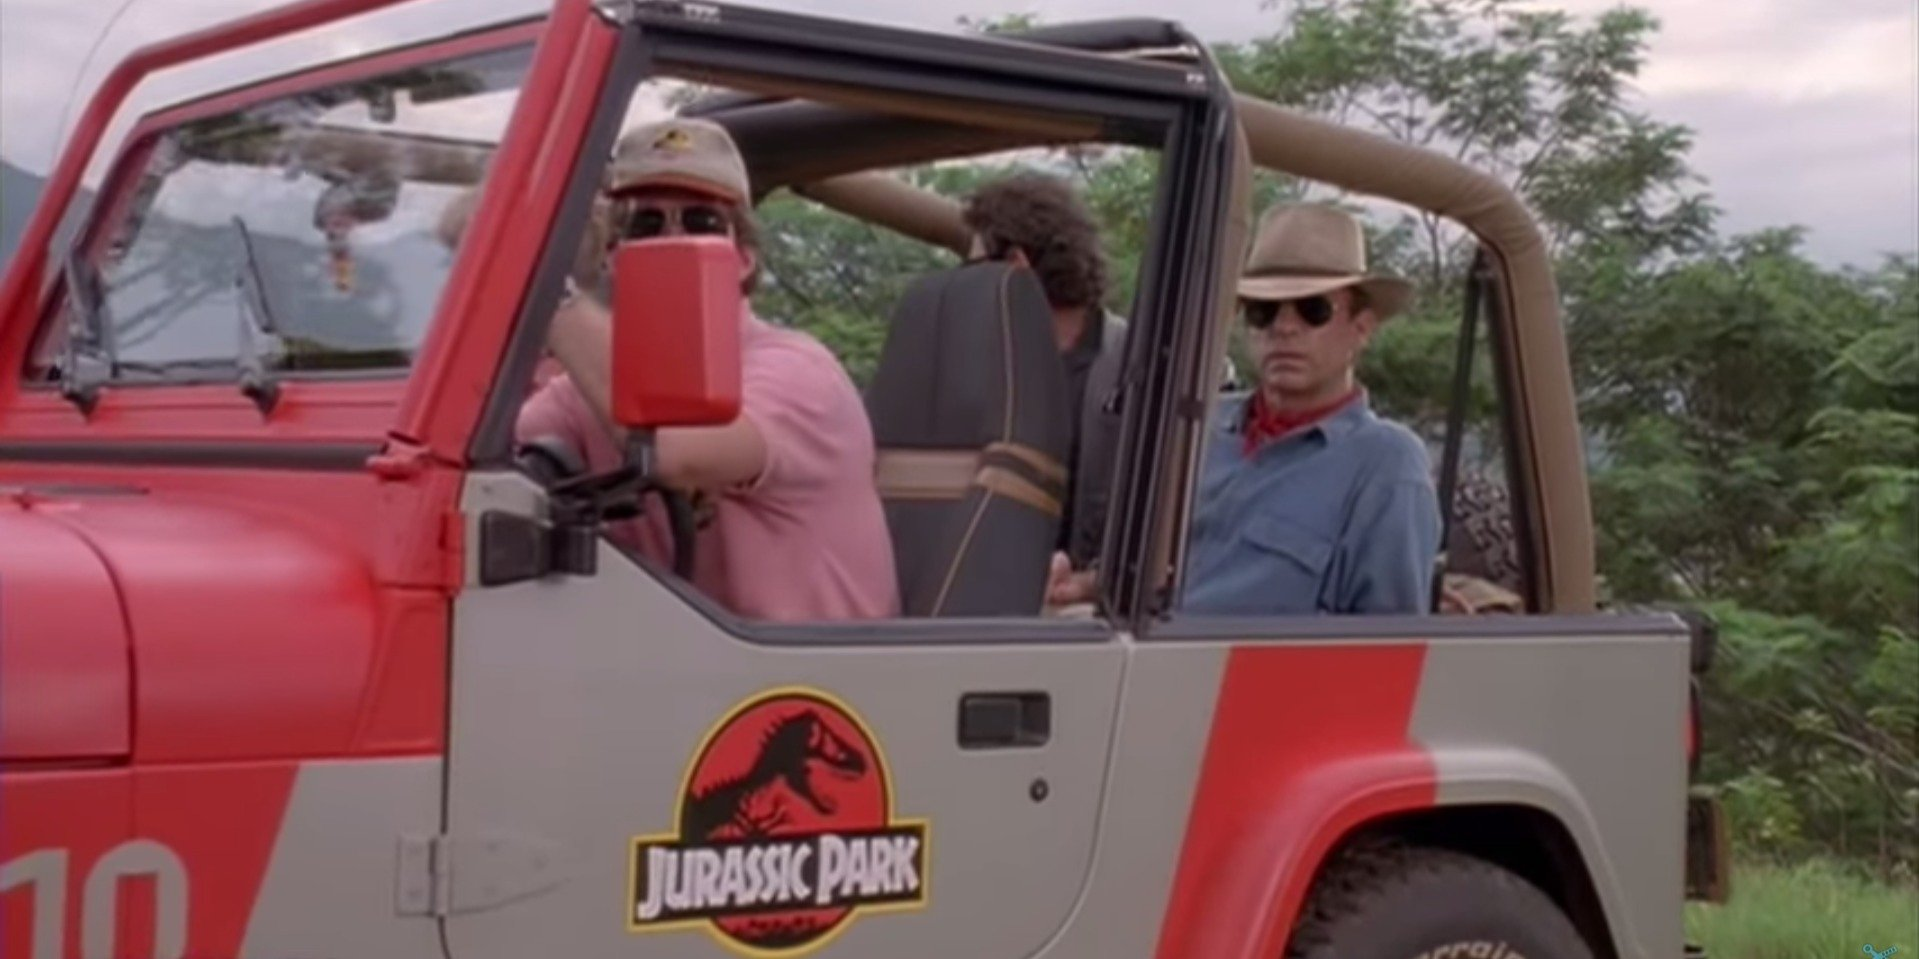 14 Jurassic Park References Made In Jurassic World